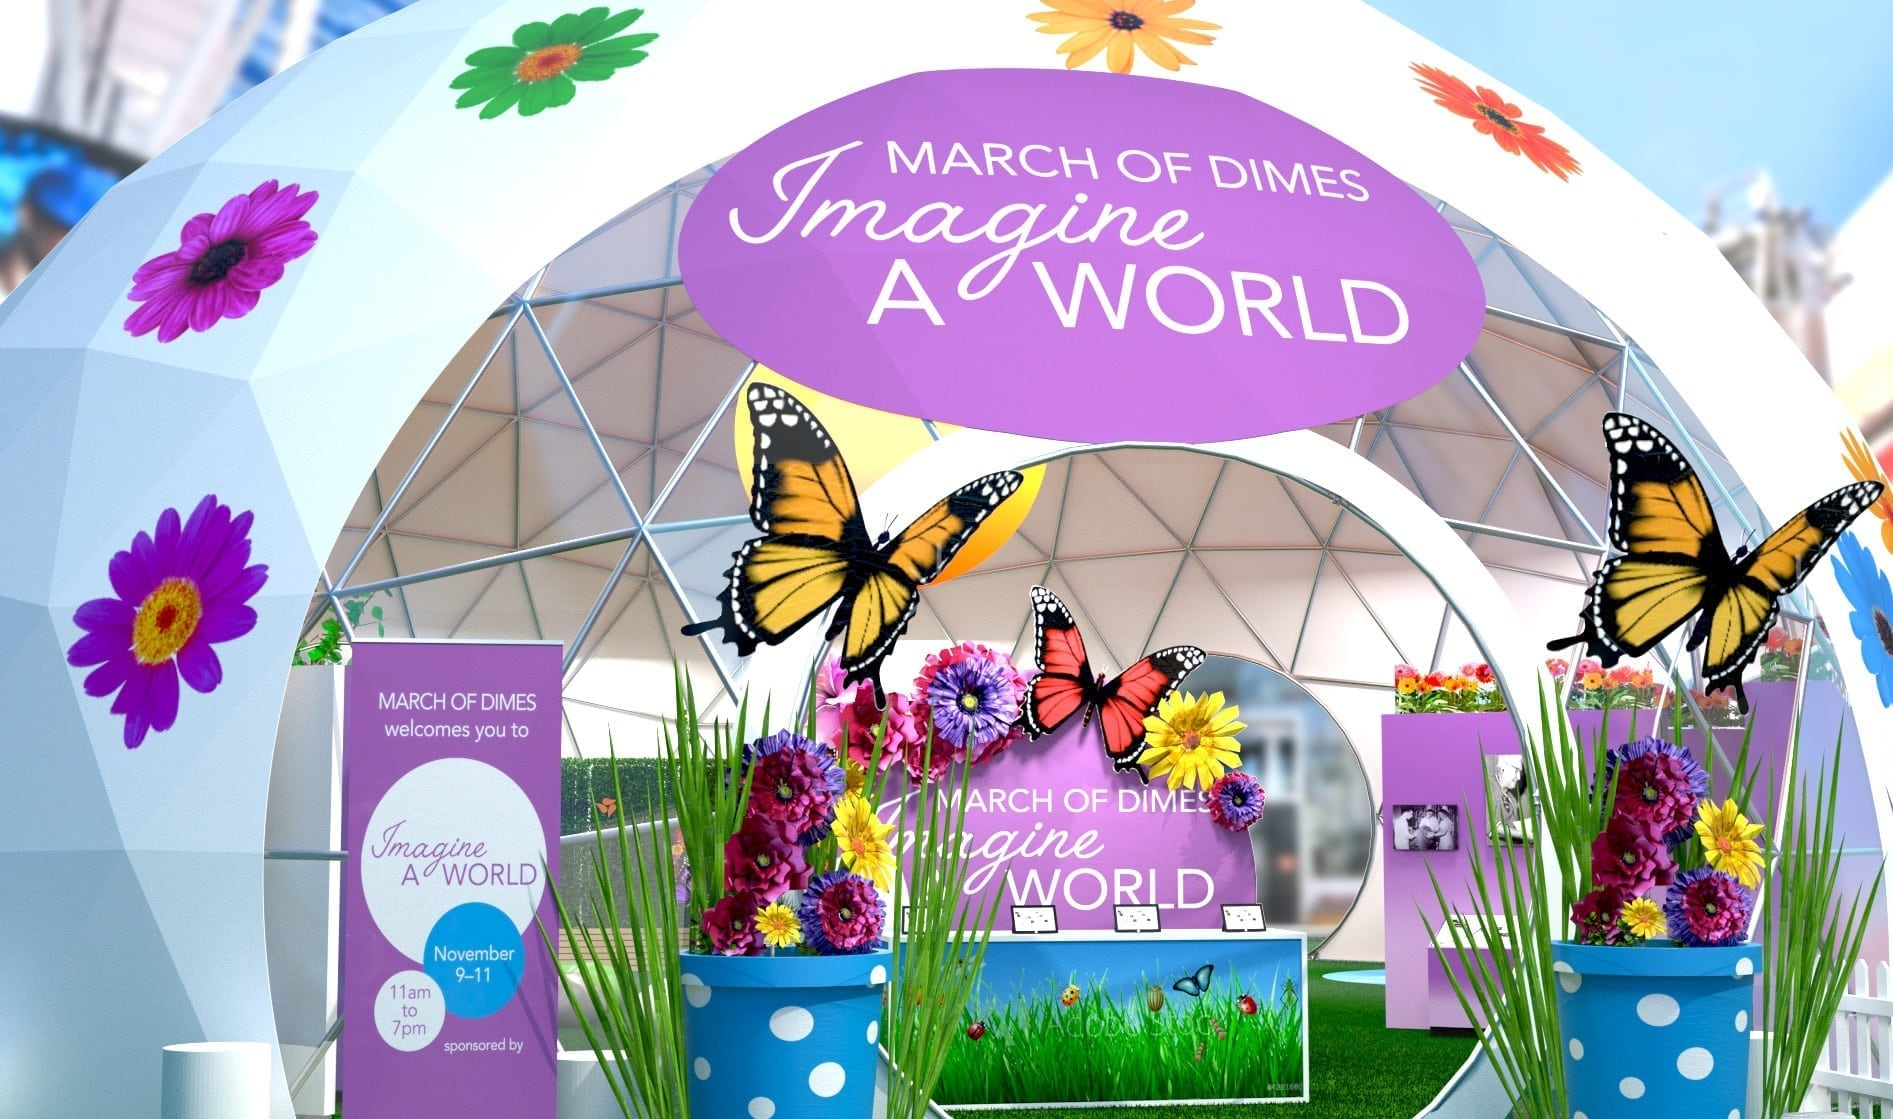 March of Dimes' Imagine A World Pop-Up Experience